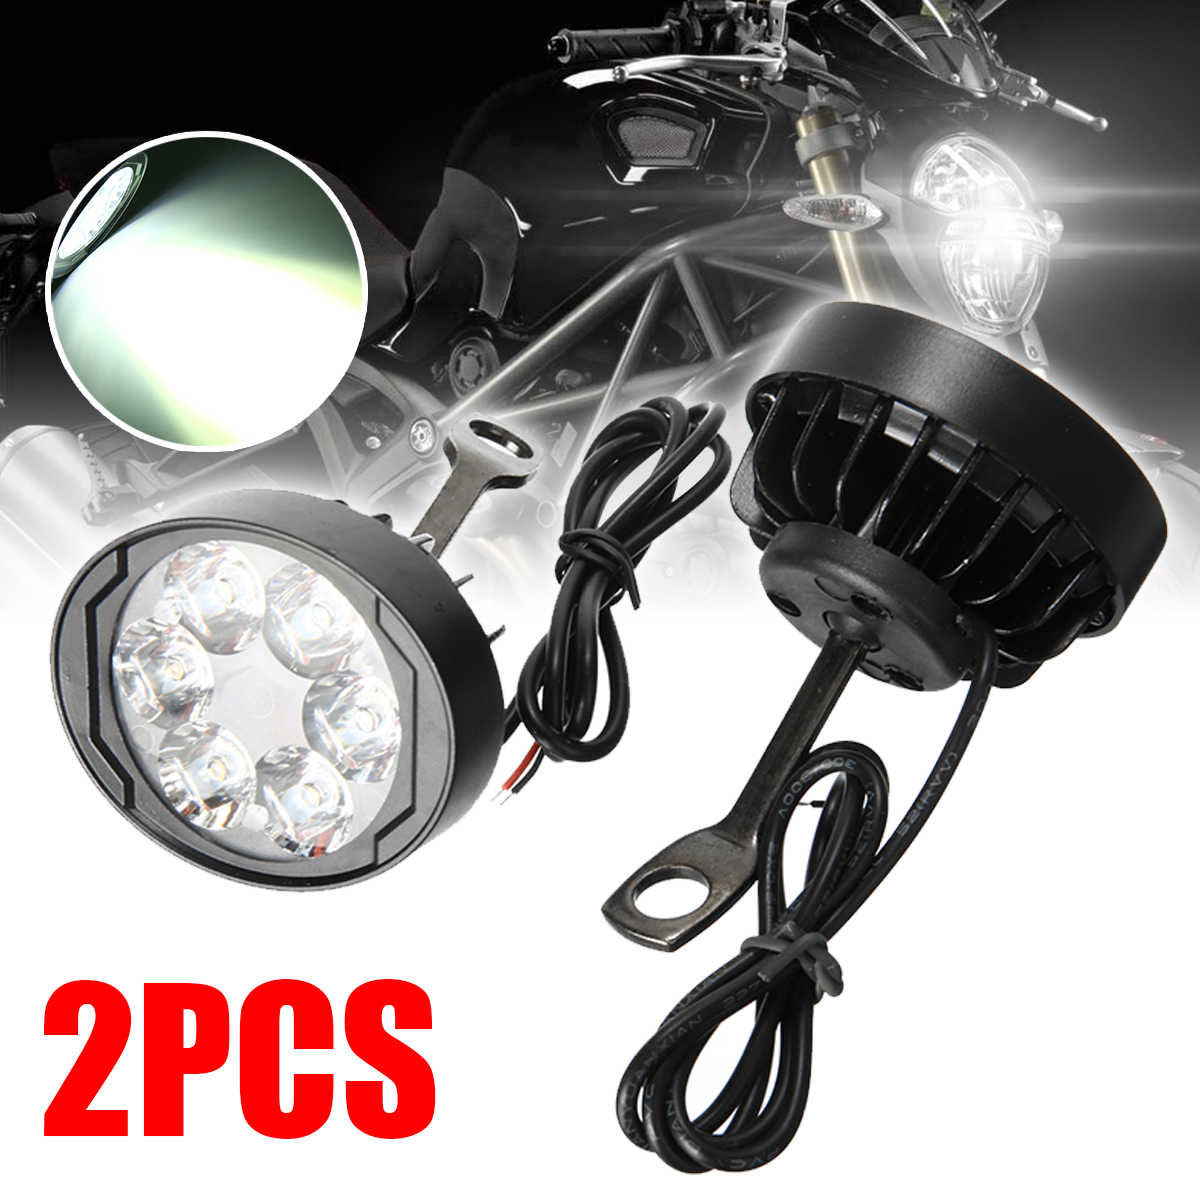 Mayitr 2pcs Universal Motorcycle E-bike 12-85V 6LED Headlight Headlamp Fog Spot Light Waterproof Lamp Bulb Scooter Accessories